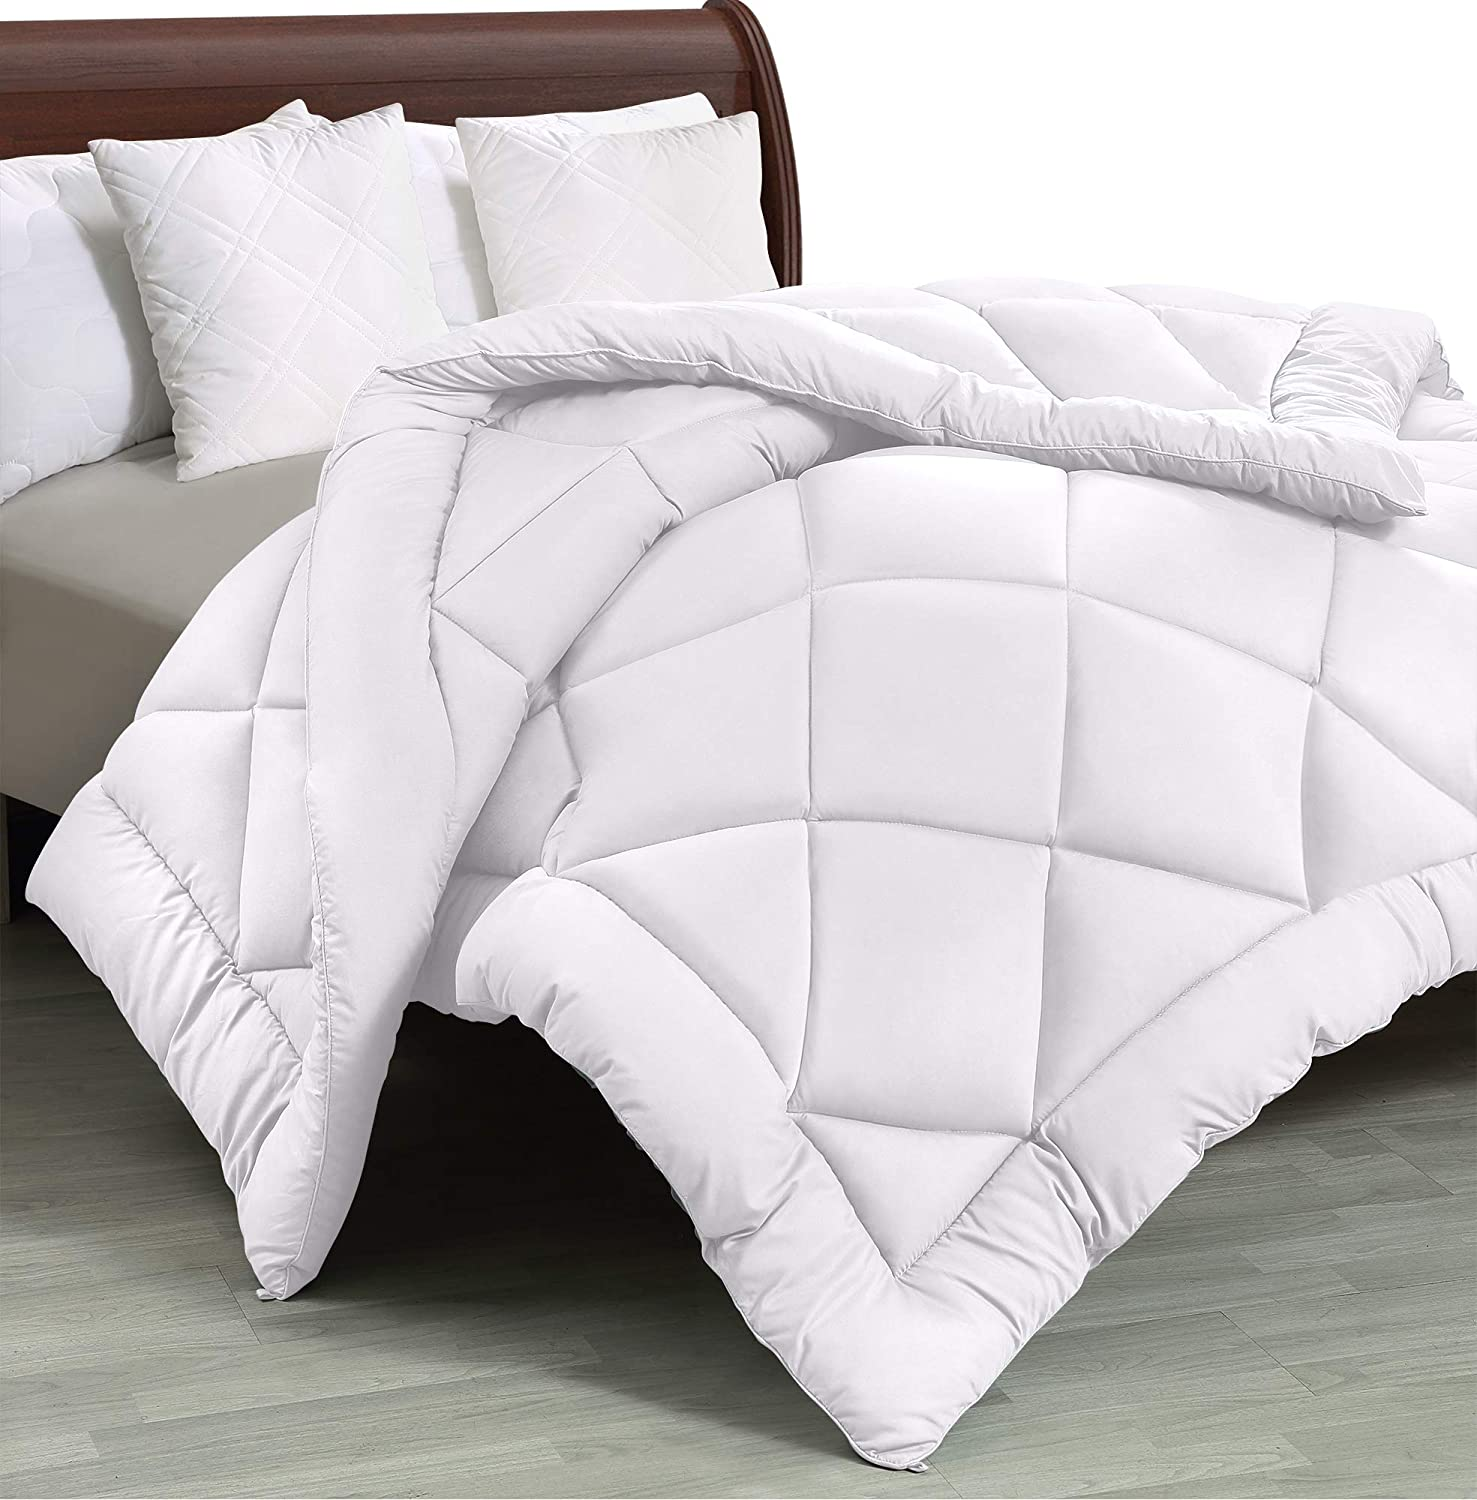 Utopia Bedding - All Season Quilted Duvet Insert - Goose Down Alternative Comforter - King/Cal King - White